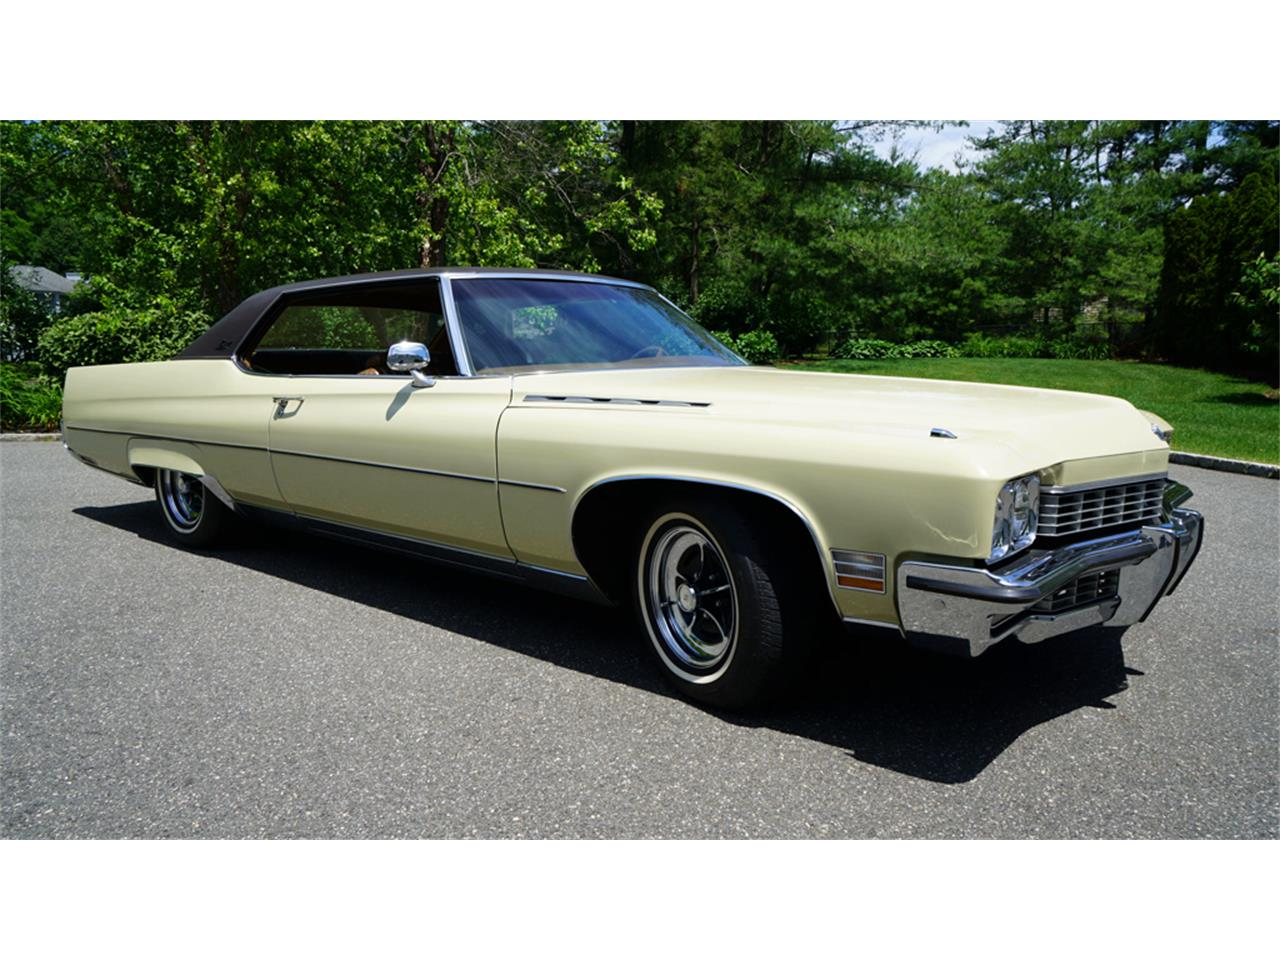 Large Picture of 1972 Buick Electra 225 located in Old Bethpage New York - $32,500.00 - QAJE